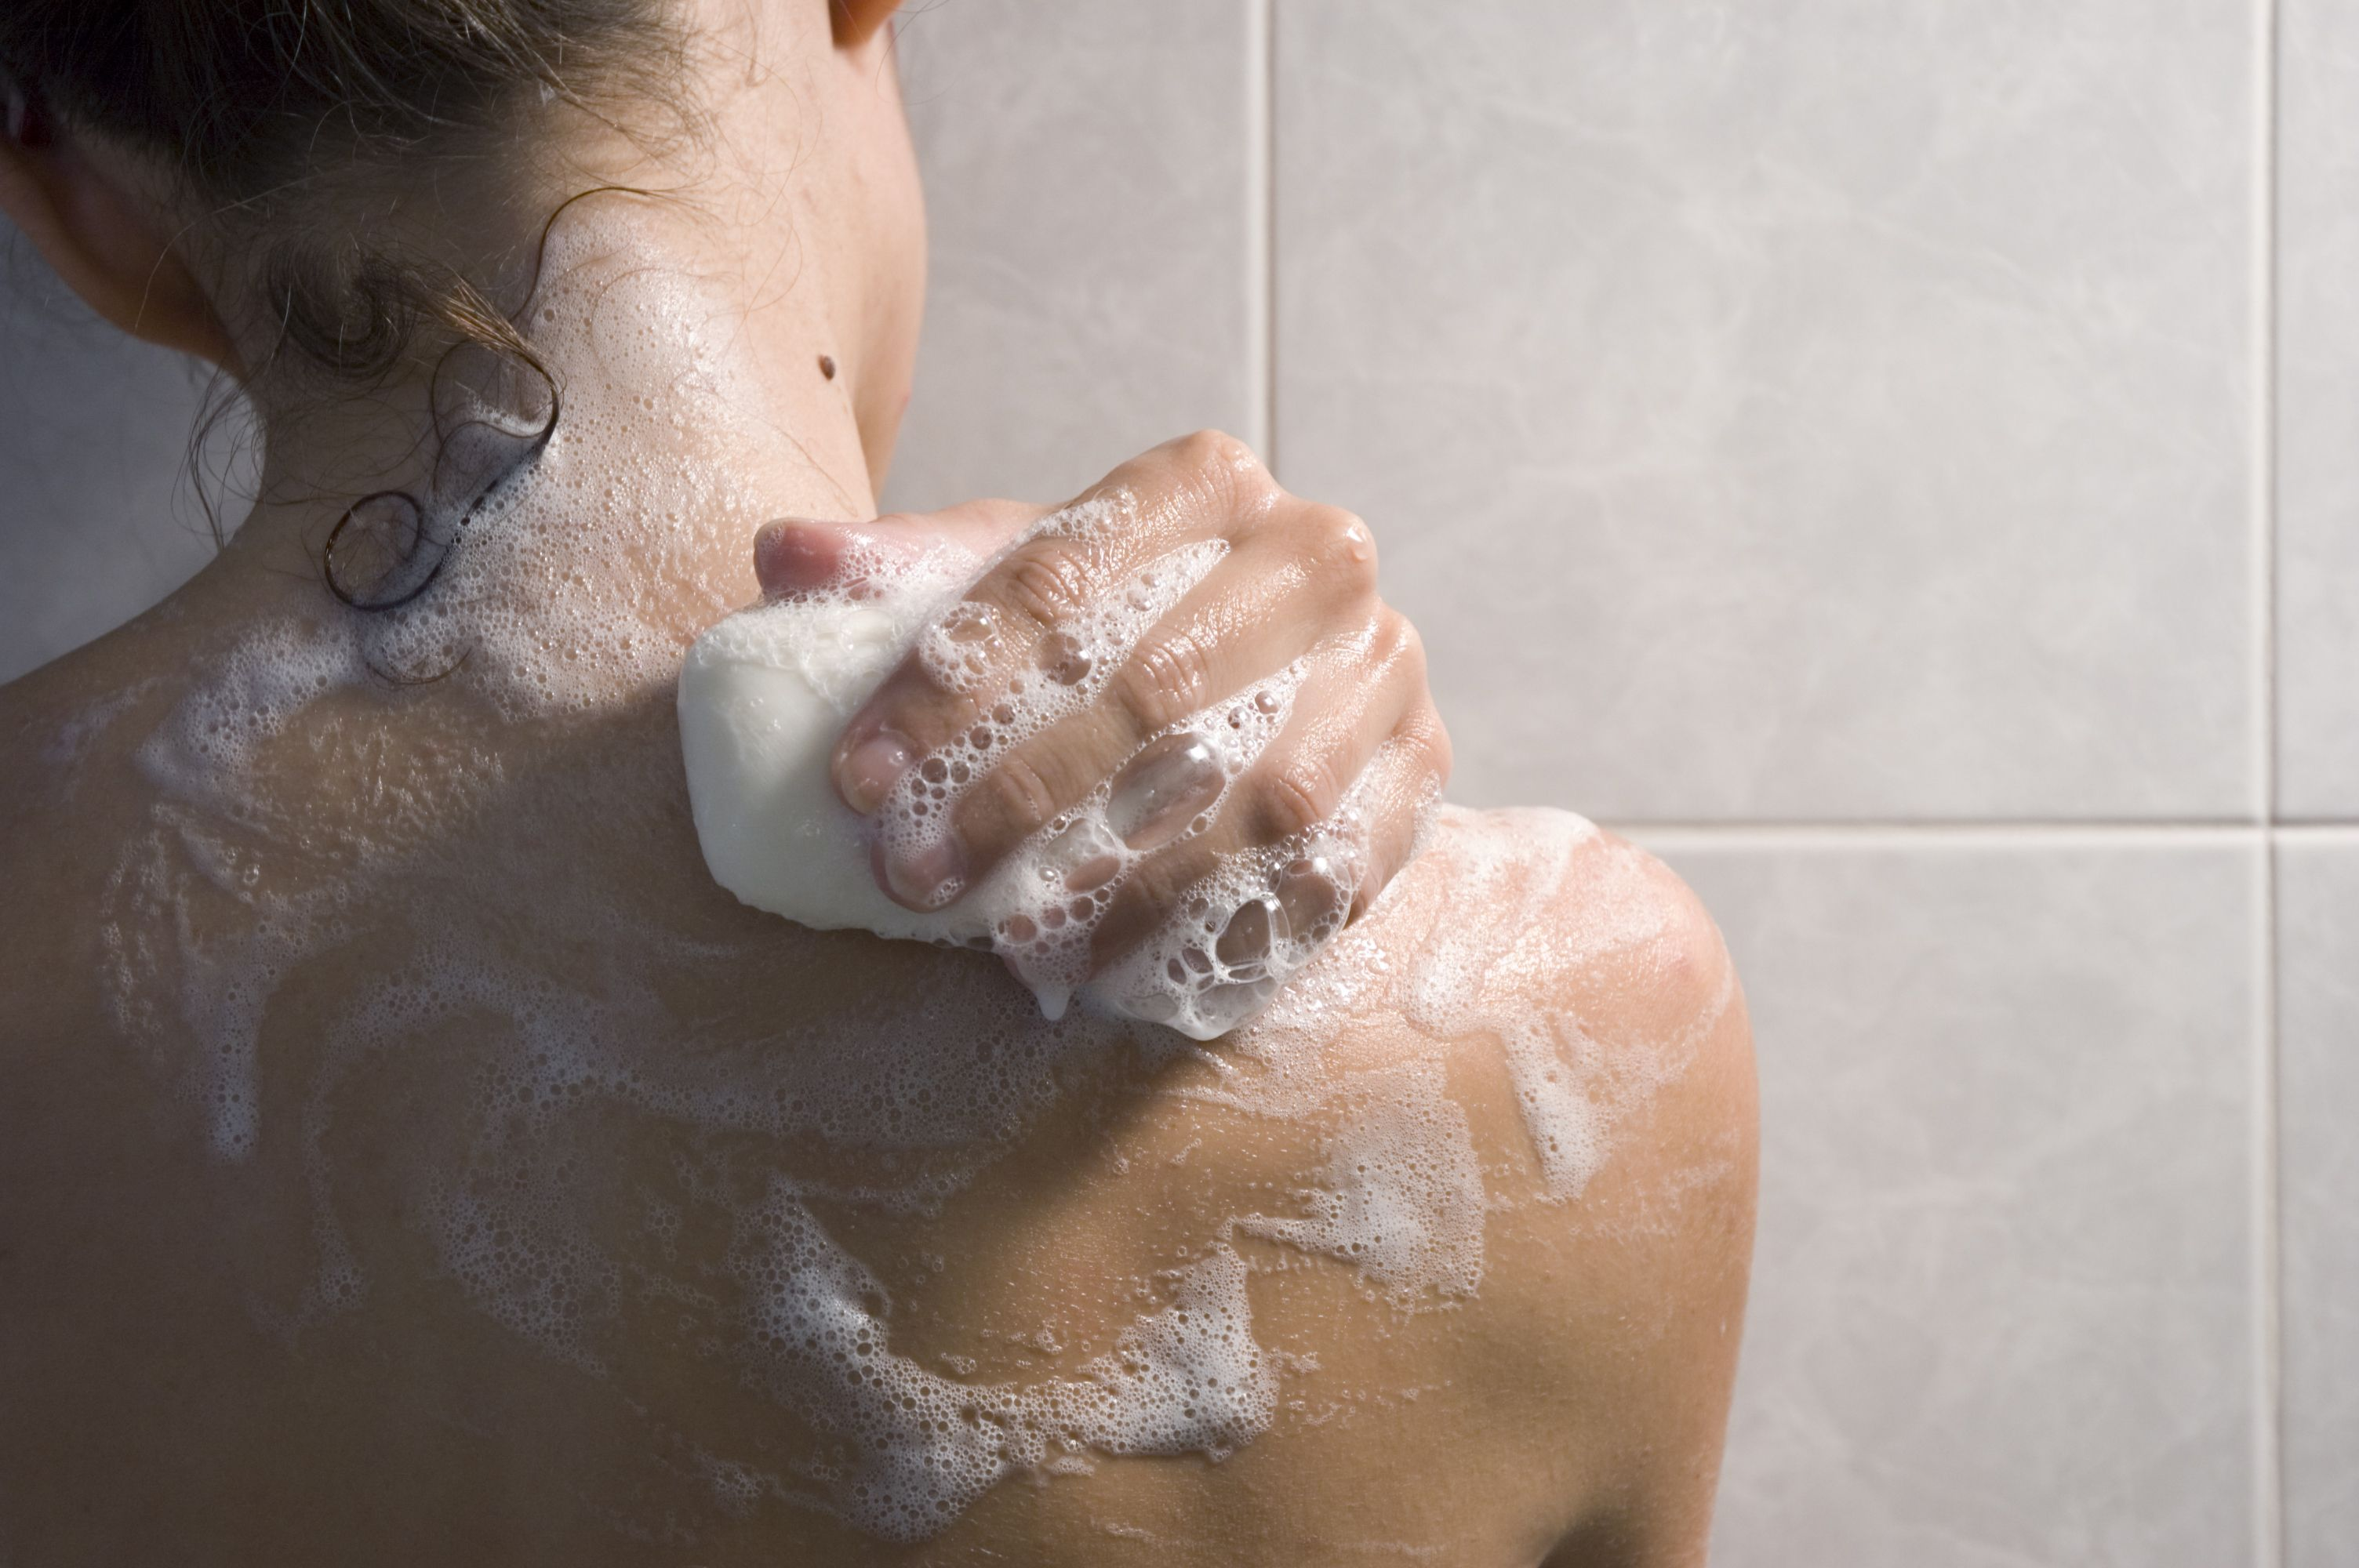 7 Acne Body Washes That Will Clear Up Your Skin